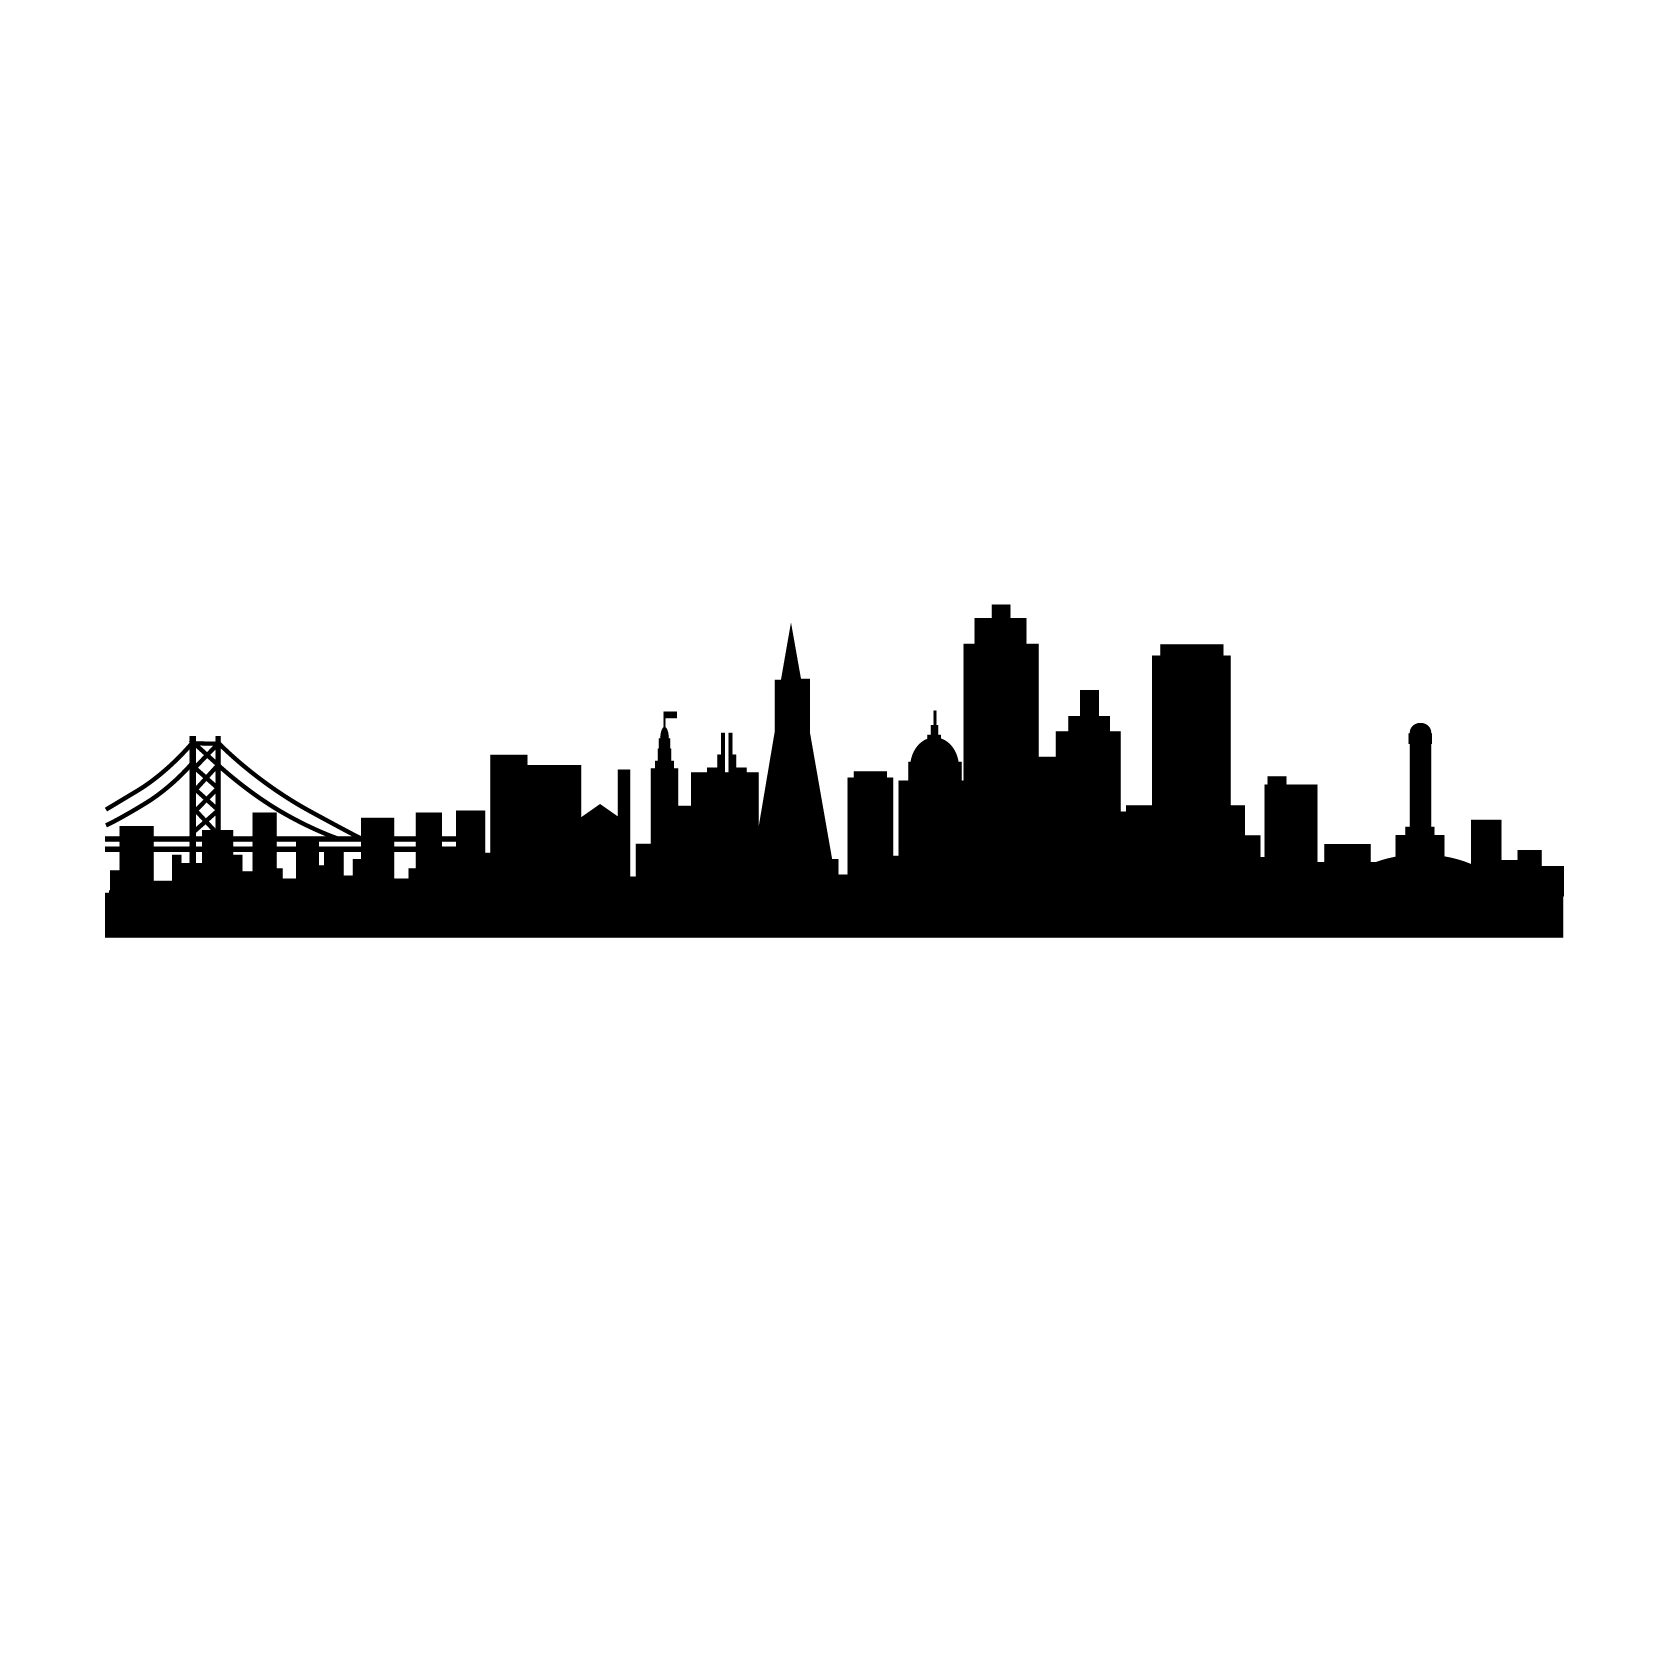 Gotham City Skyline Wallpaper Gotham City Skyline Outline